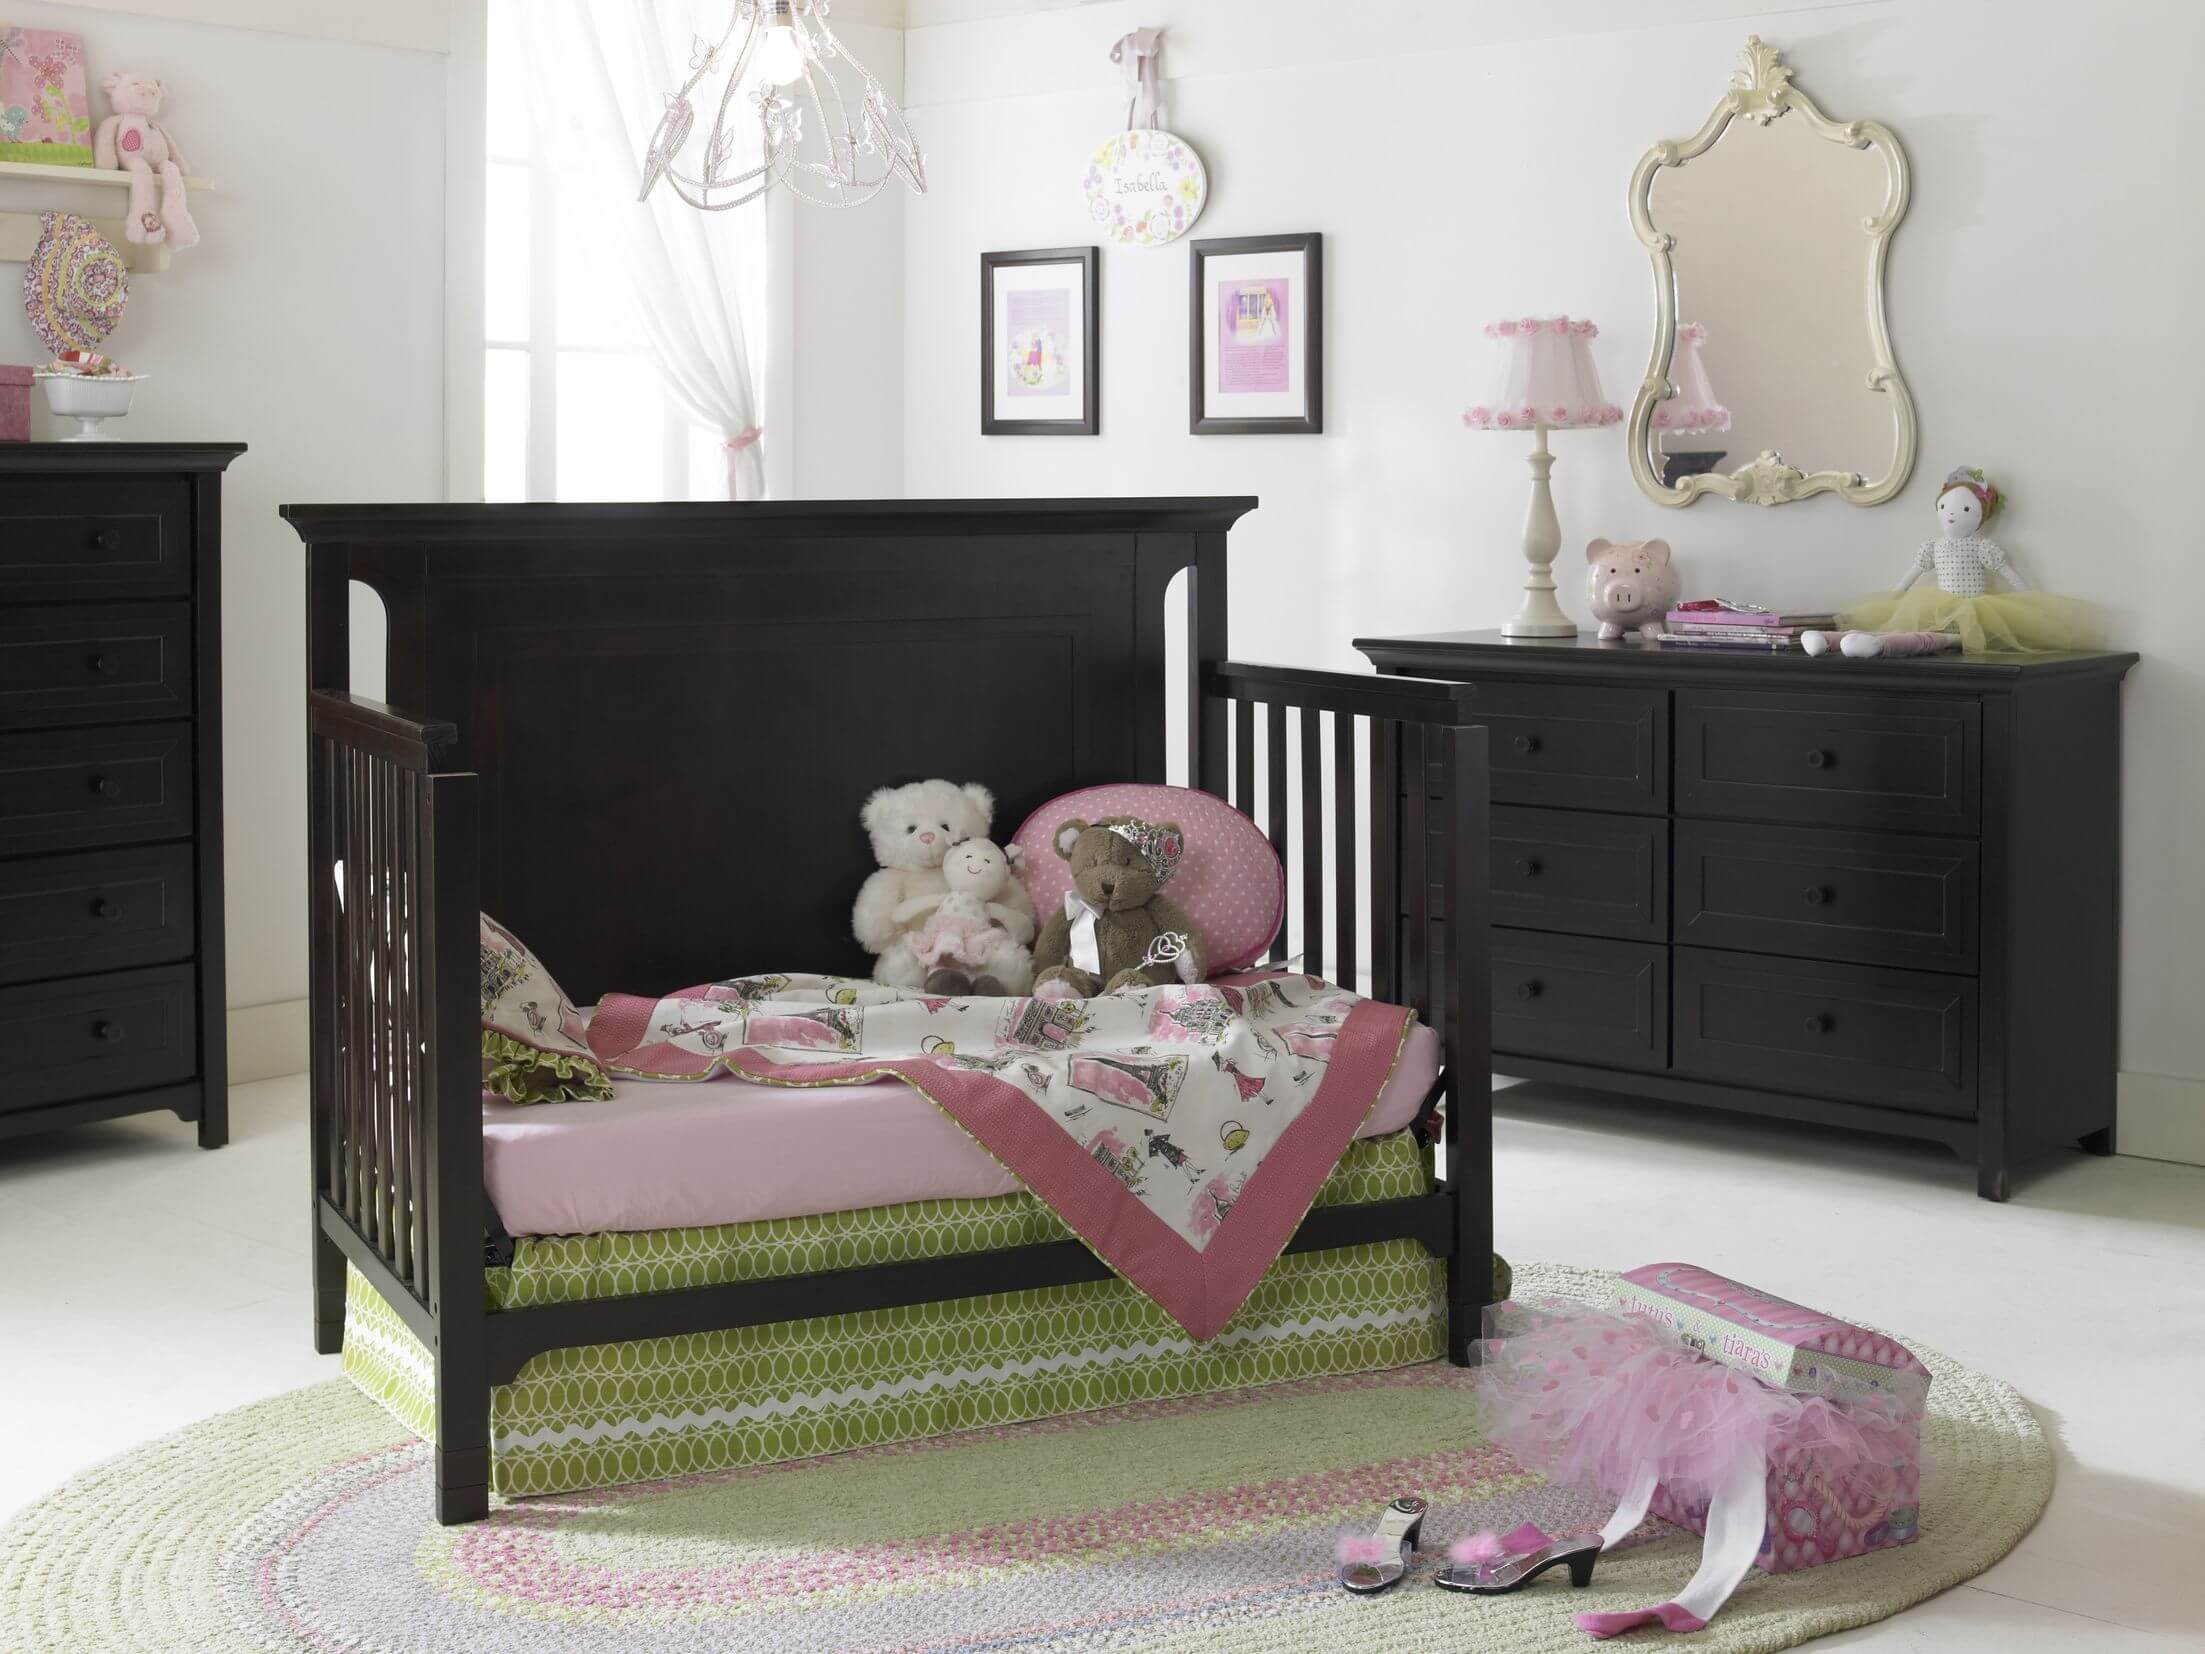 Baby cribs with matching dresser - High Contrast Theme Unifies This Nursery With Dark Wood Convertible Crib Standing Between Matching Dressers